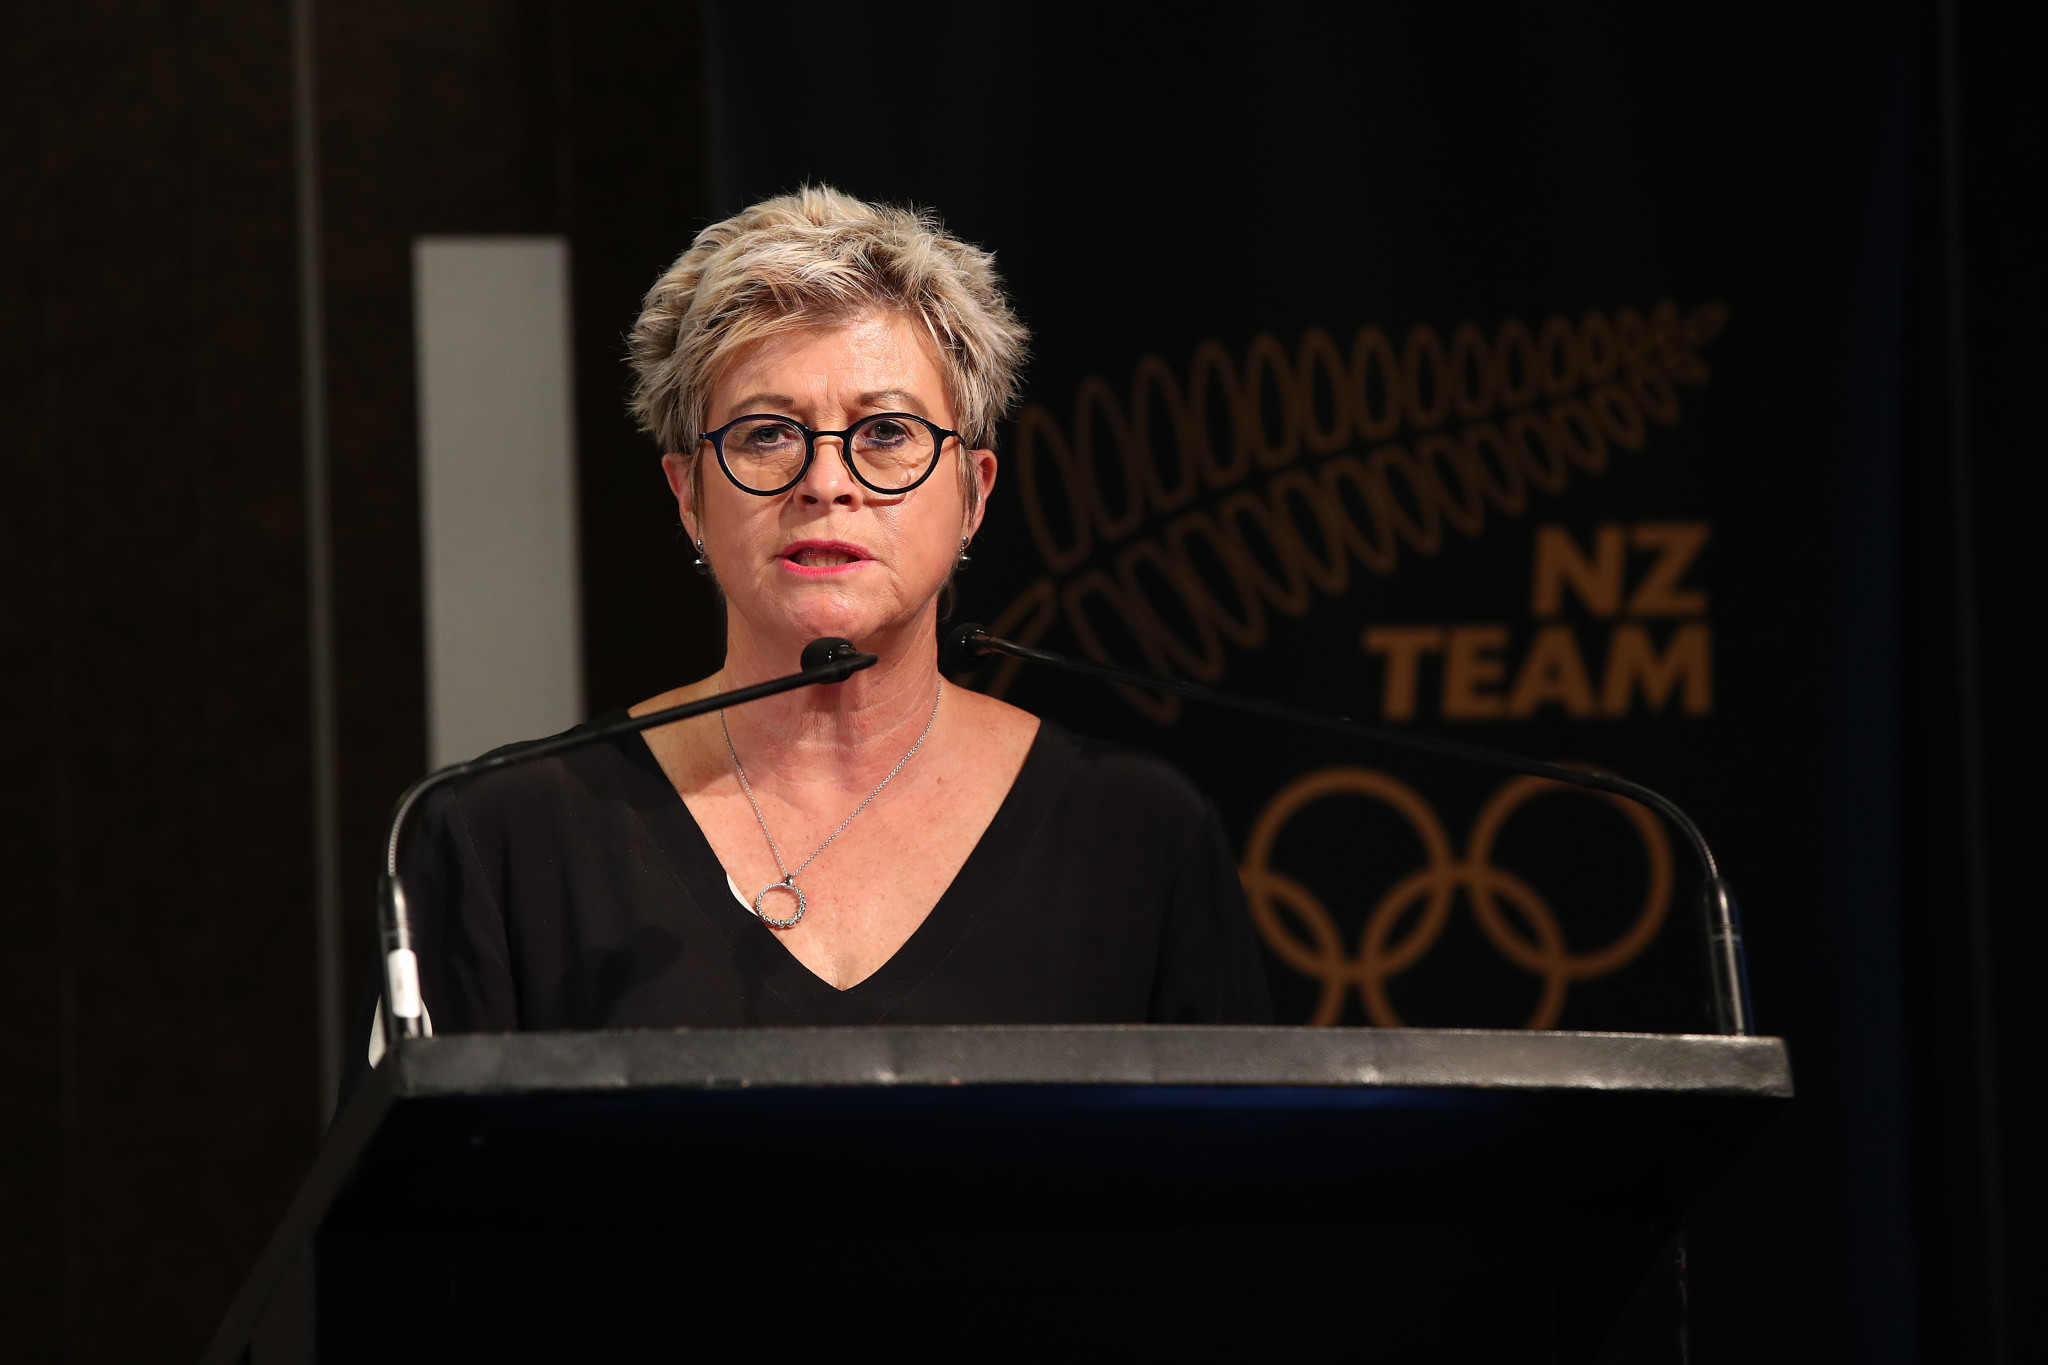 New Zealand Olympic Committee chief executive Kereyn Smith extended her congratulations to Campbell Wright ©Getty Images